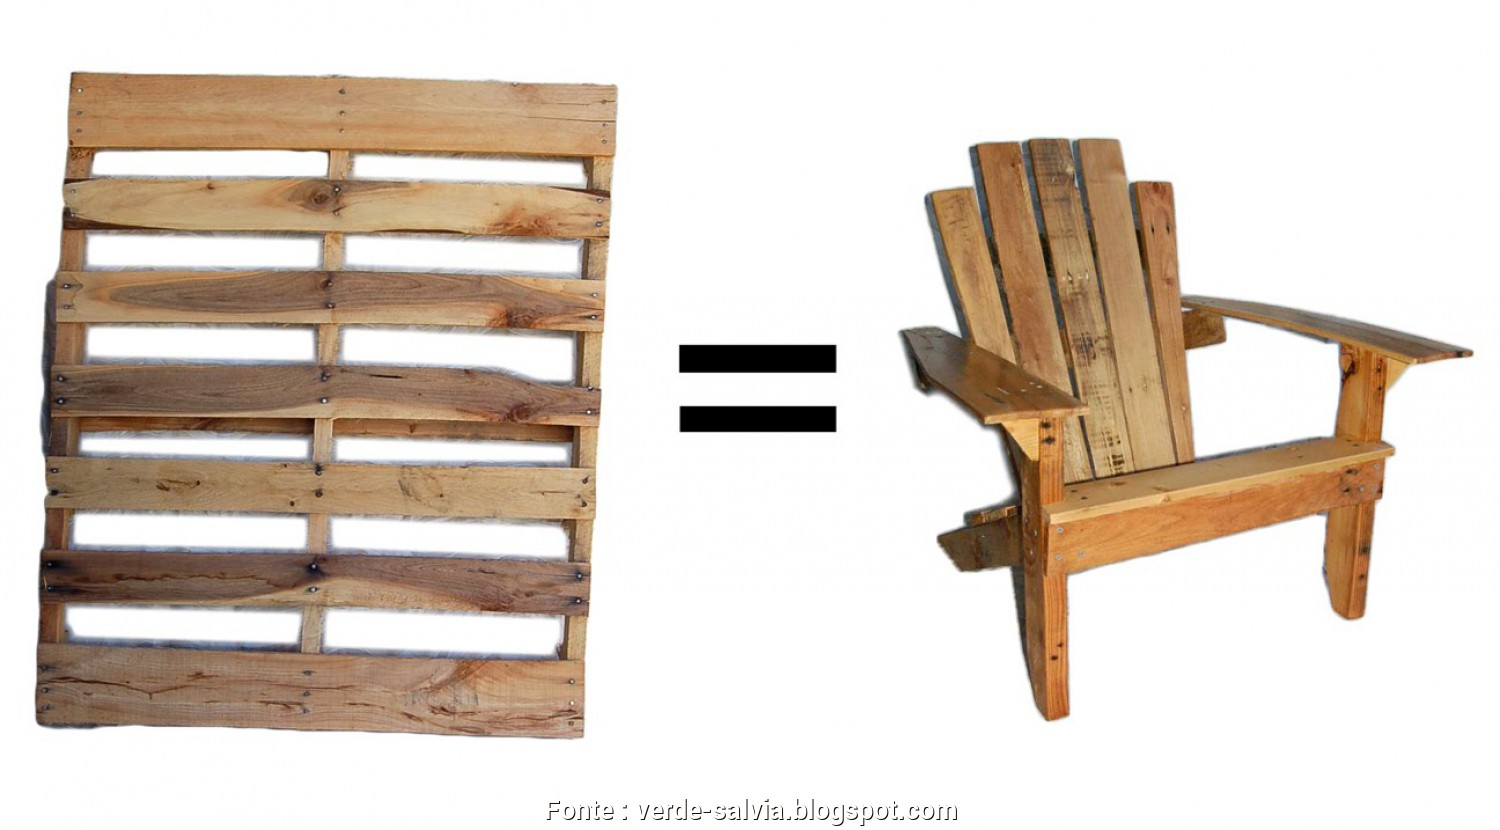 "Come Fare Sedie, Bancali, Ideale VerdeSalvia"": I Love Pallets"